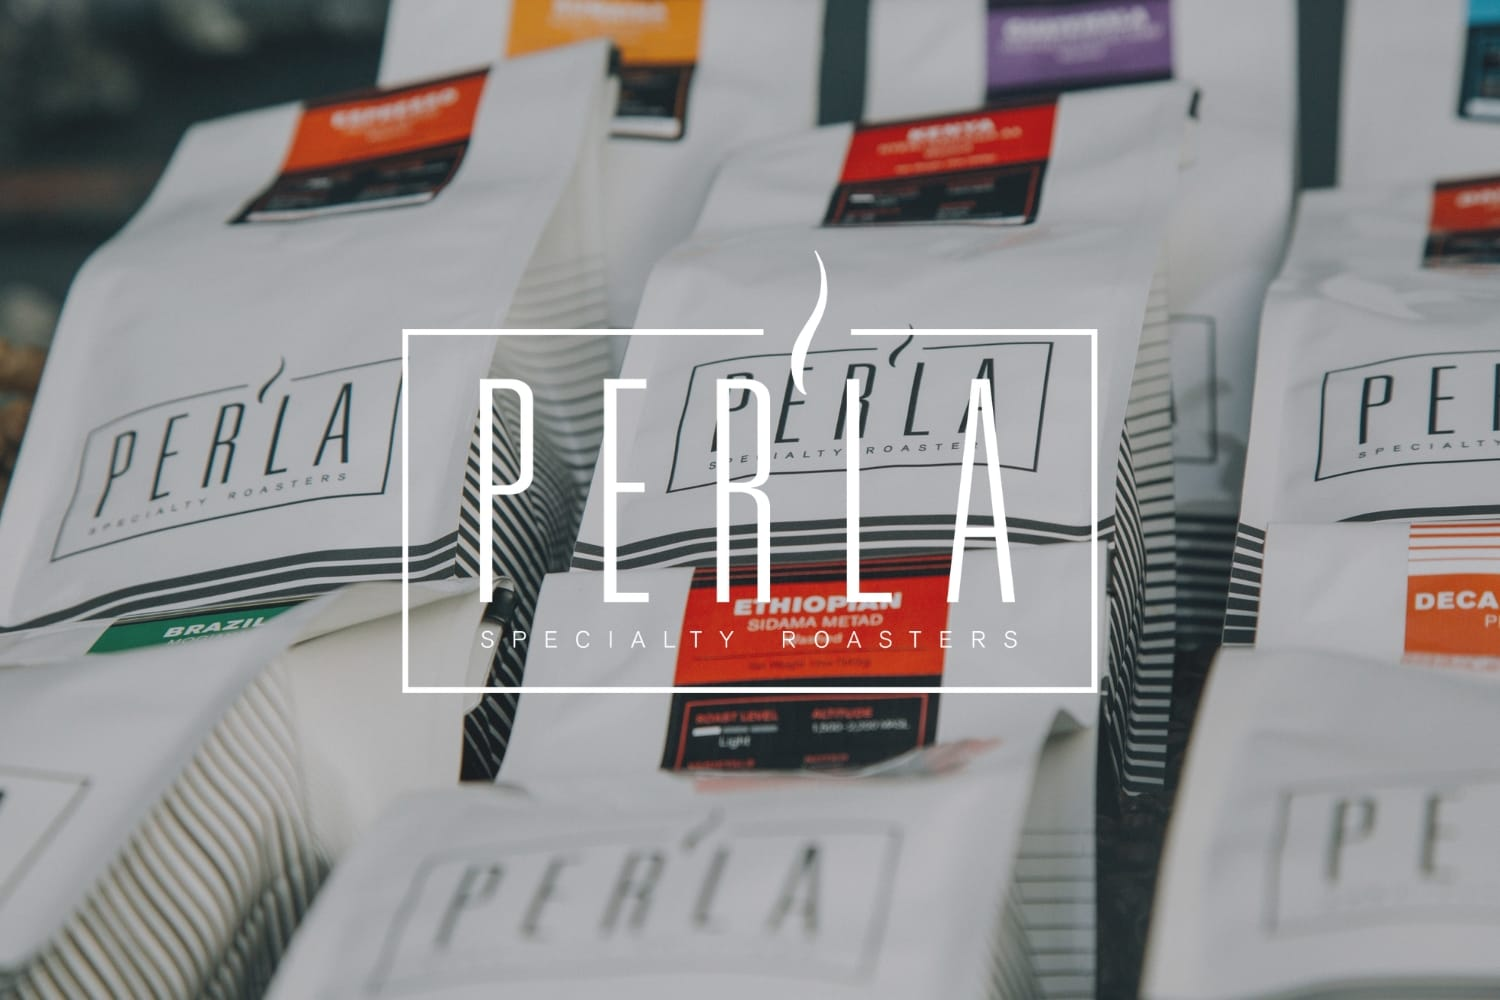 perla-specialty-roasters-at-kunjani-naples.jpg